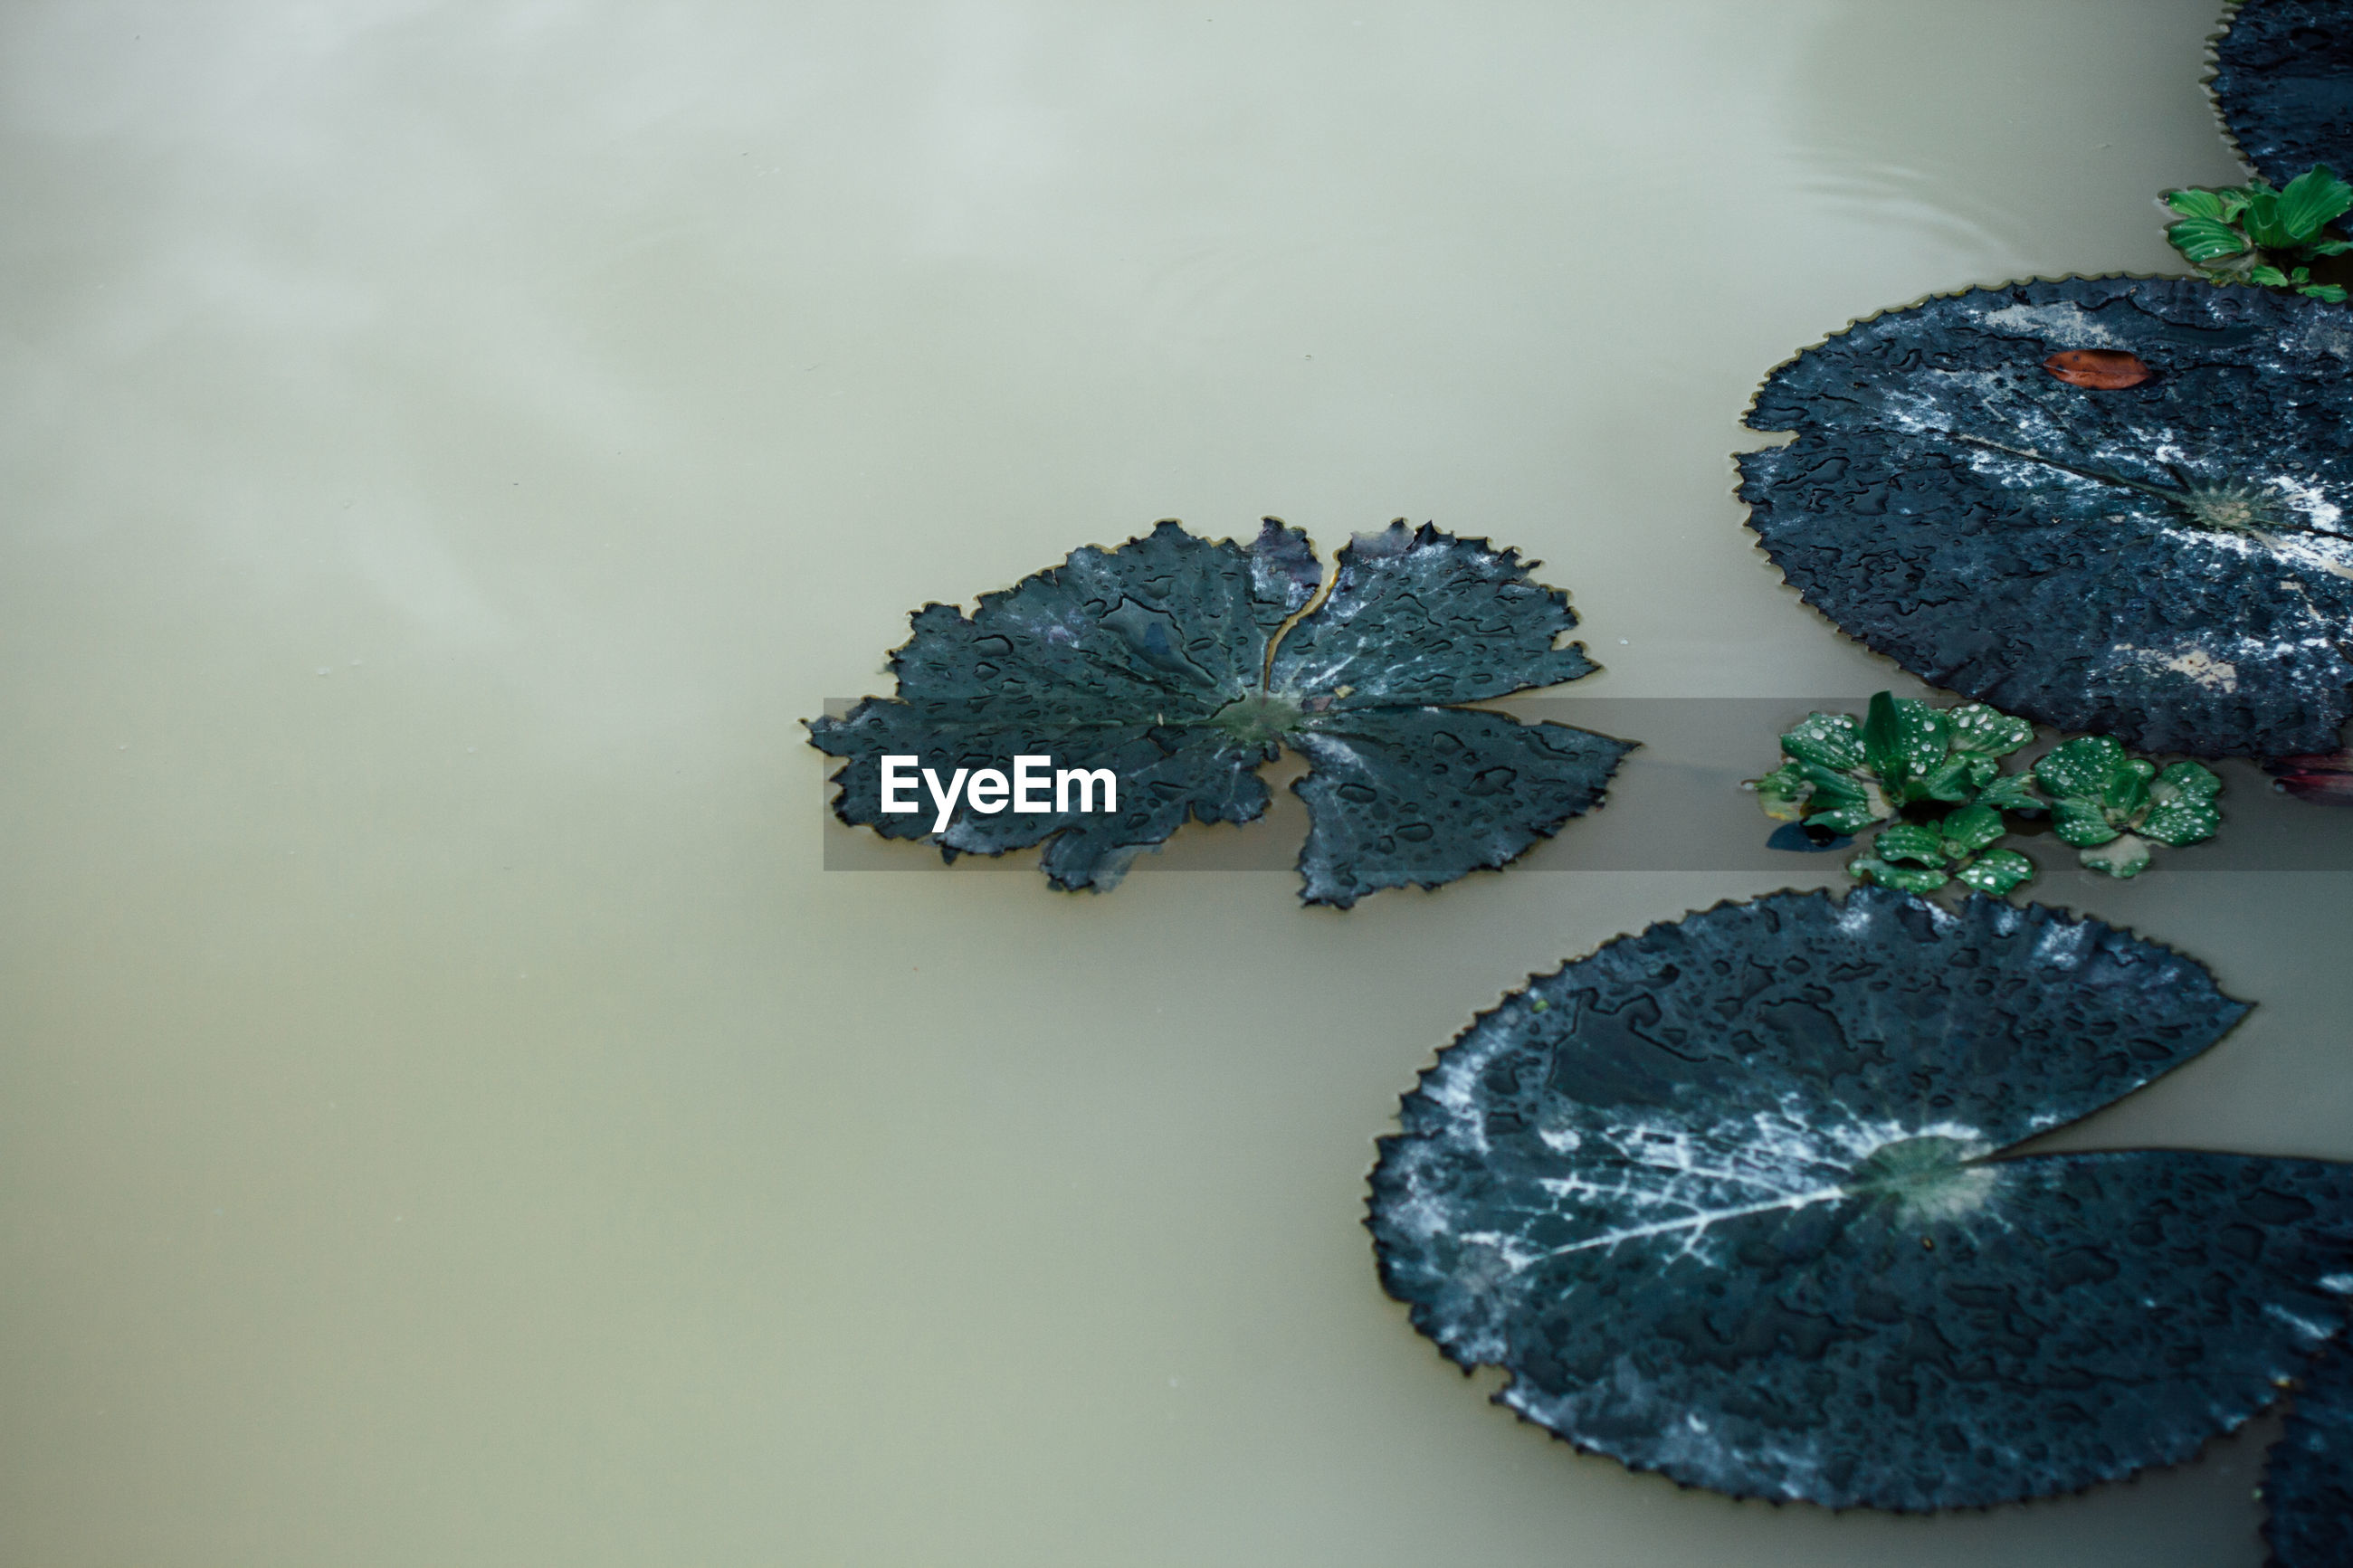 Close-up of dry leaves floating on pond